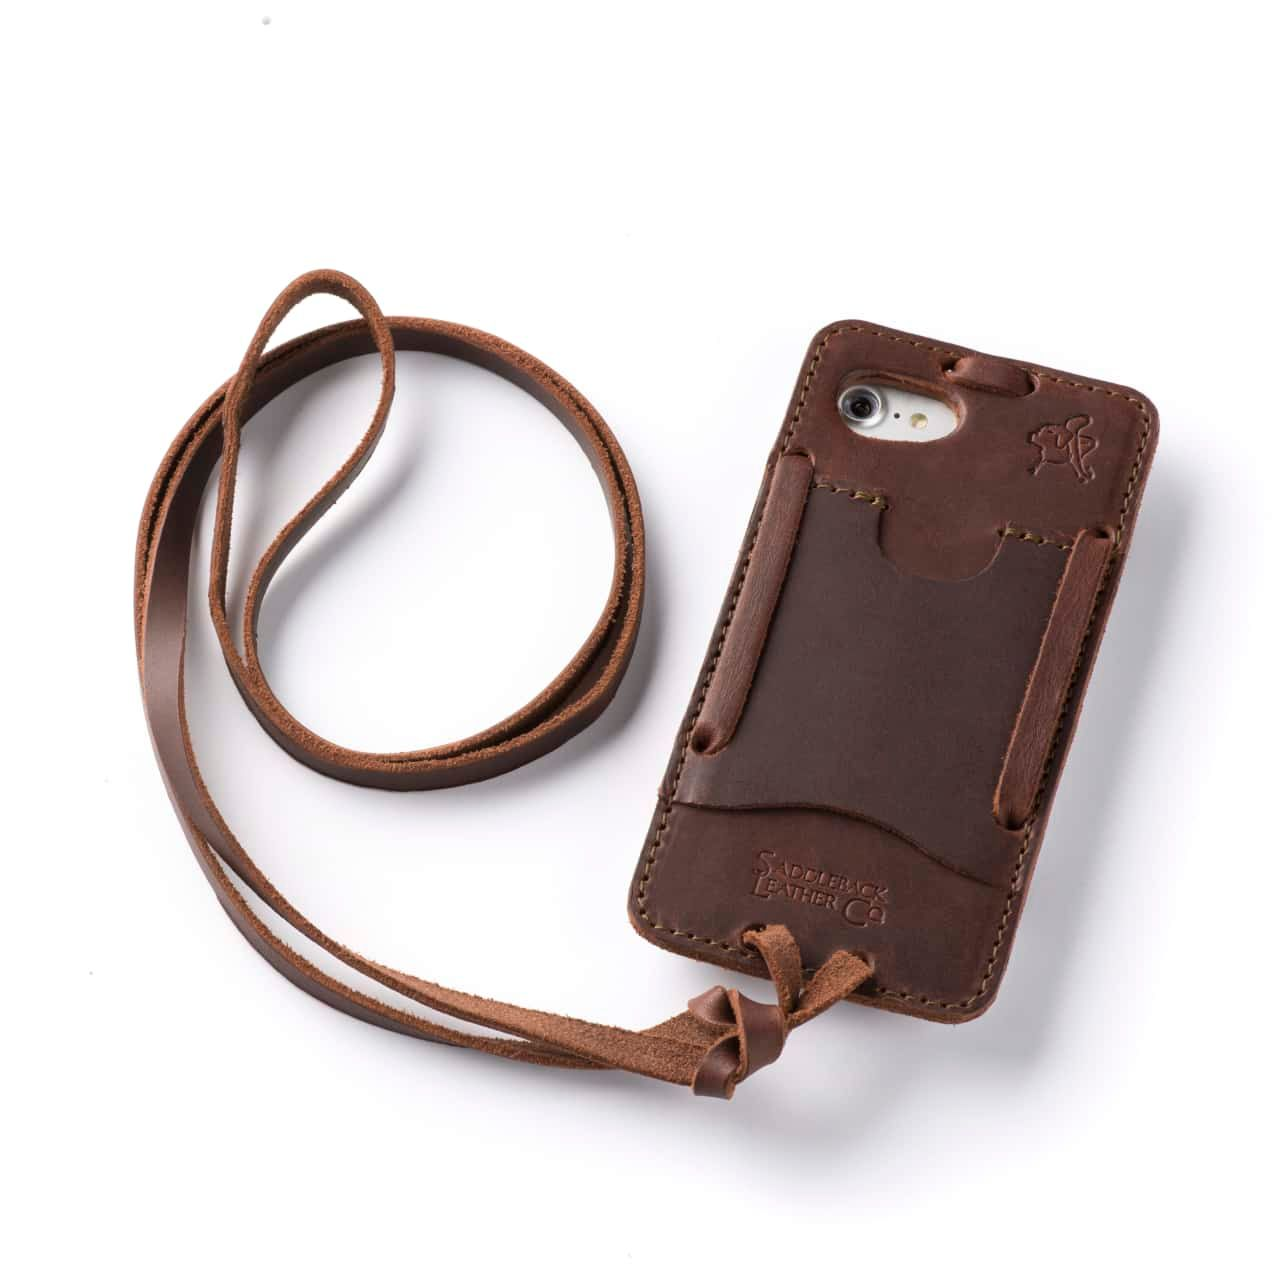 Leather iPhone 8 Case in Color Chestnut with the Lanyard attached back angle showing empty card slot